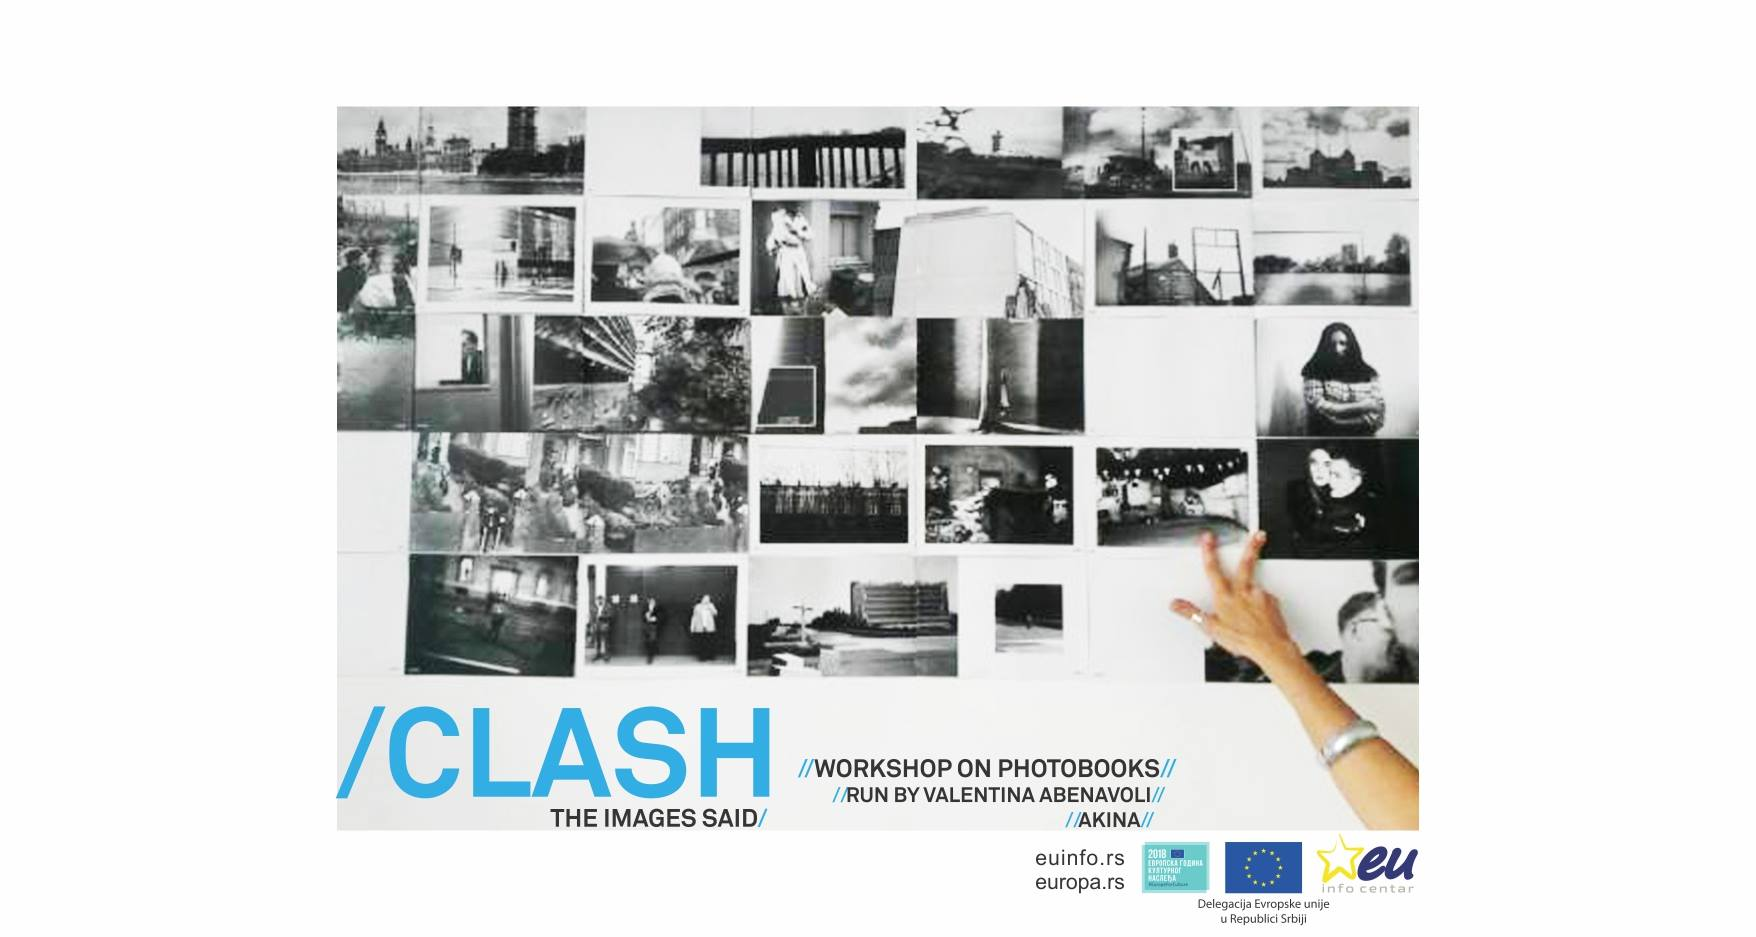 Workshop on Photobooks – CLASH, THE IMAGES SAID